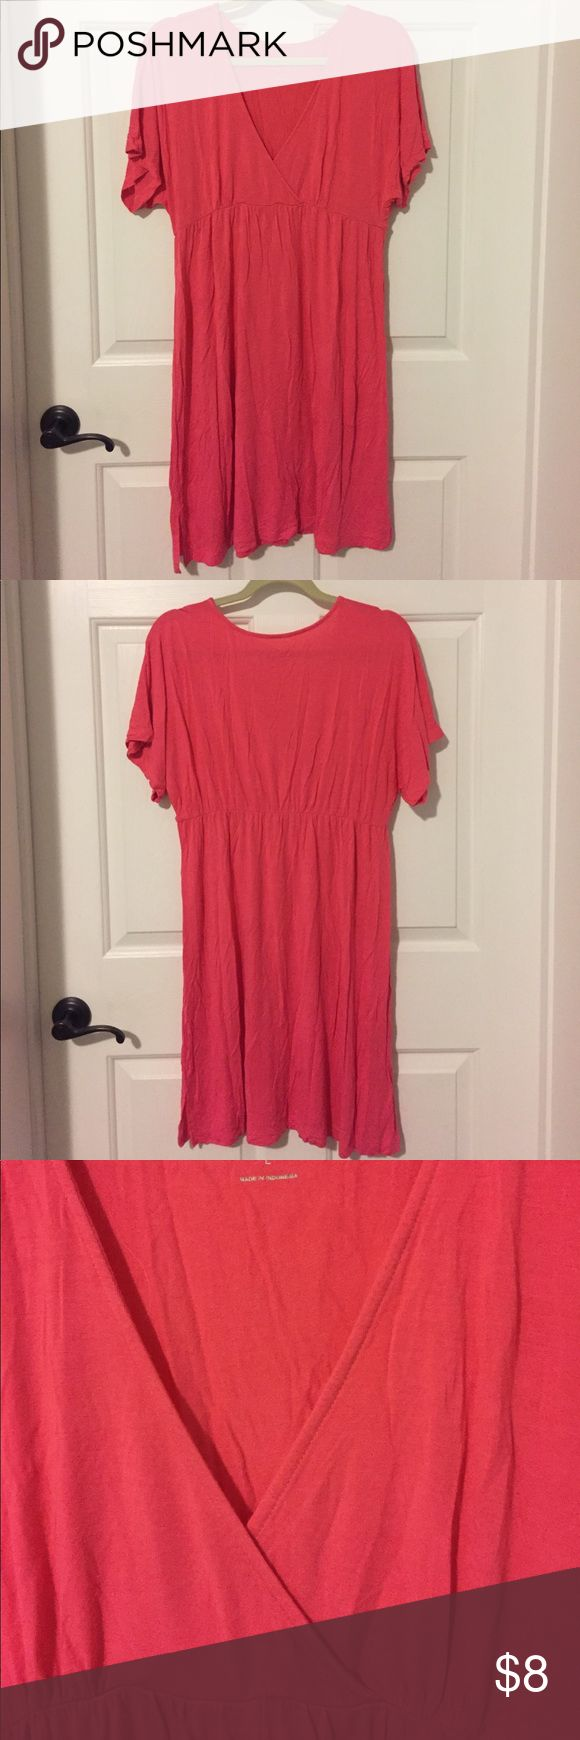 Nicole Miller swim cover up dress bright pink L Nicole Miller New York swim cover up dress with wrap style v-neck, bright pink, size L. Worn a few times and in great condition. 96% rayon, 4% spandex. Nicole Miller Swim Coverups